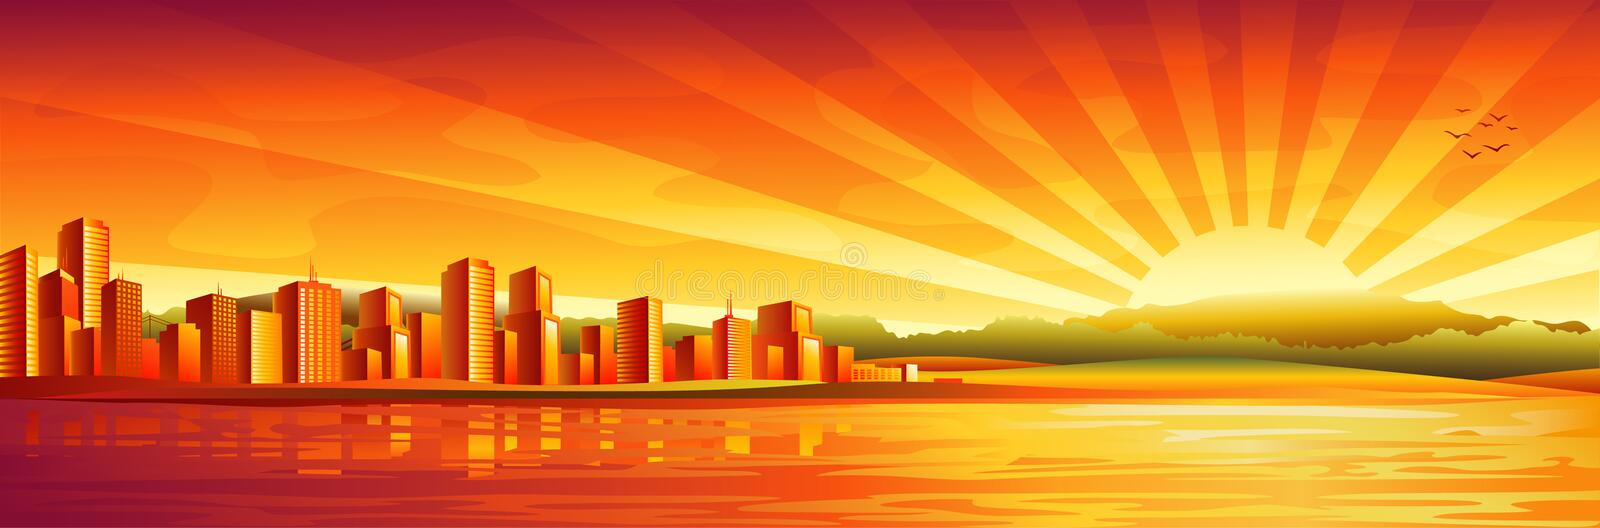 Big city sunset panorama vector illustration